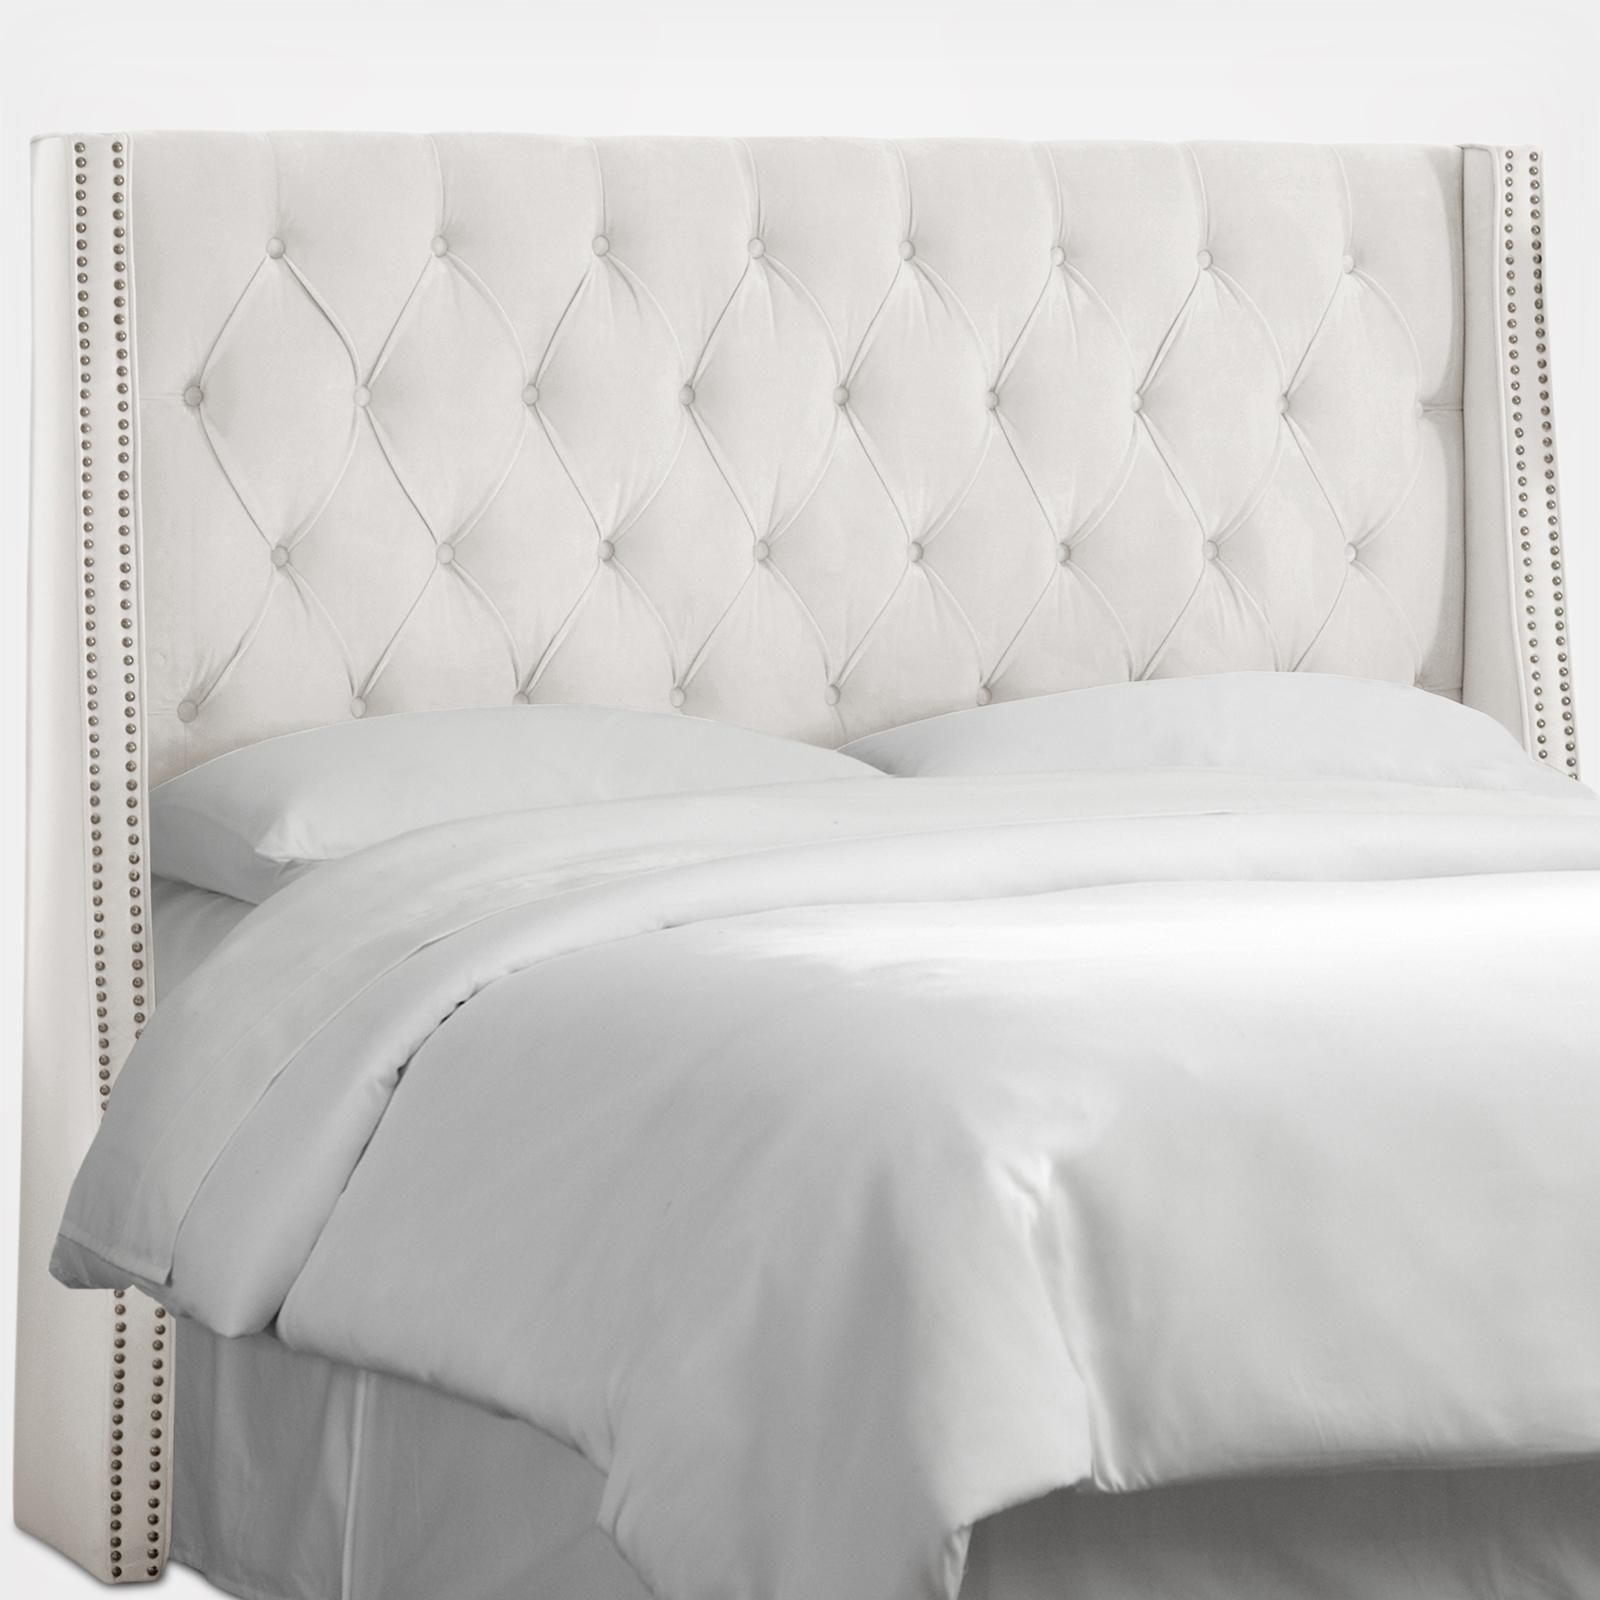 Elegance And Luxury Unite With This Exquisite Nail Button Tufted Wingback Headboard Up Tufted Wingback Headboard Upholstered Headboard King Wingback Headboard